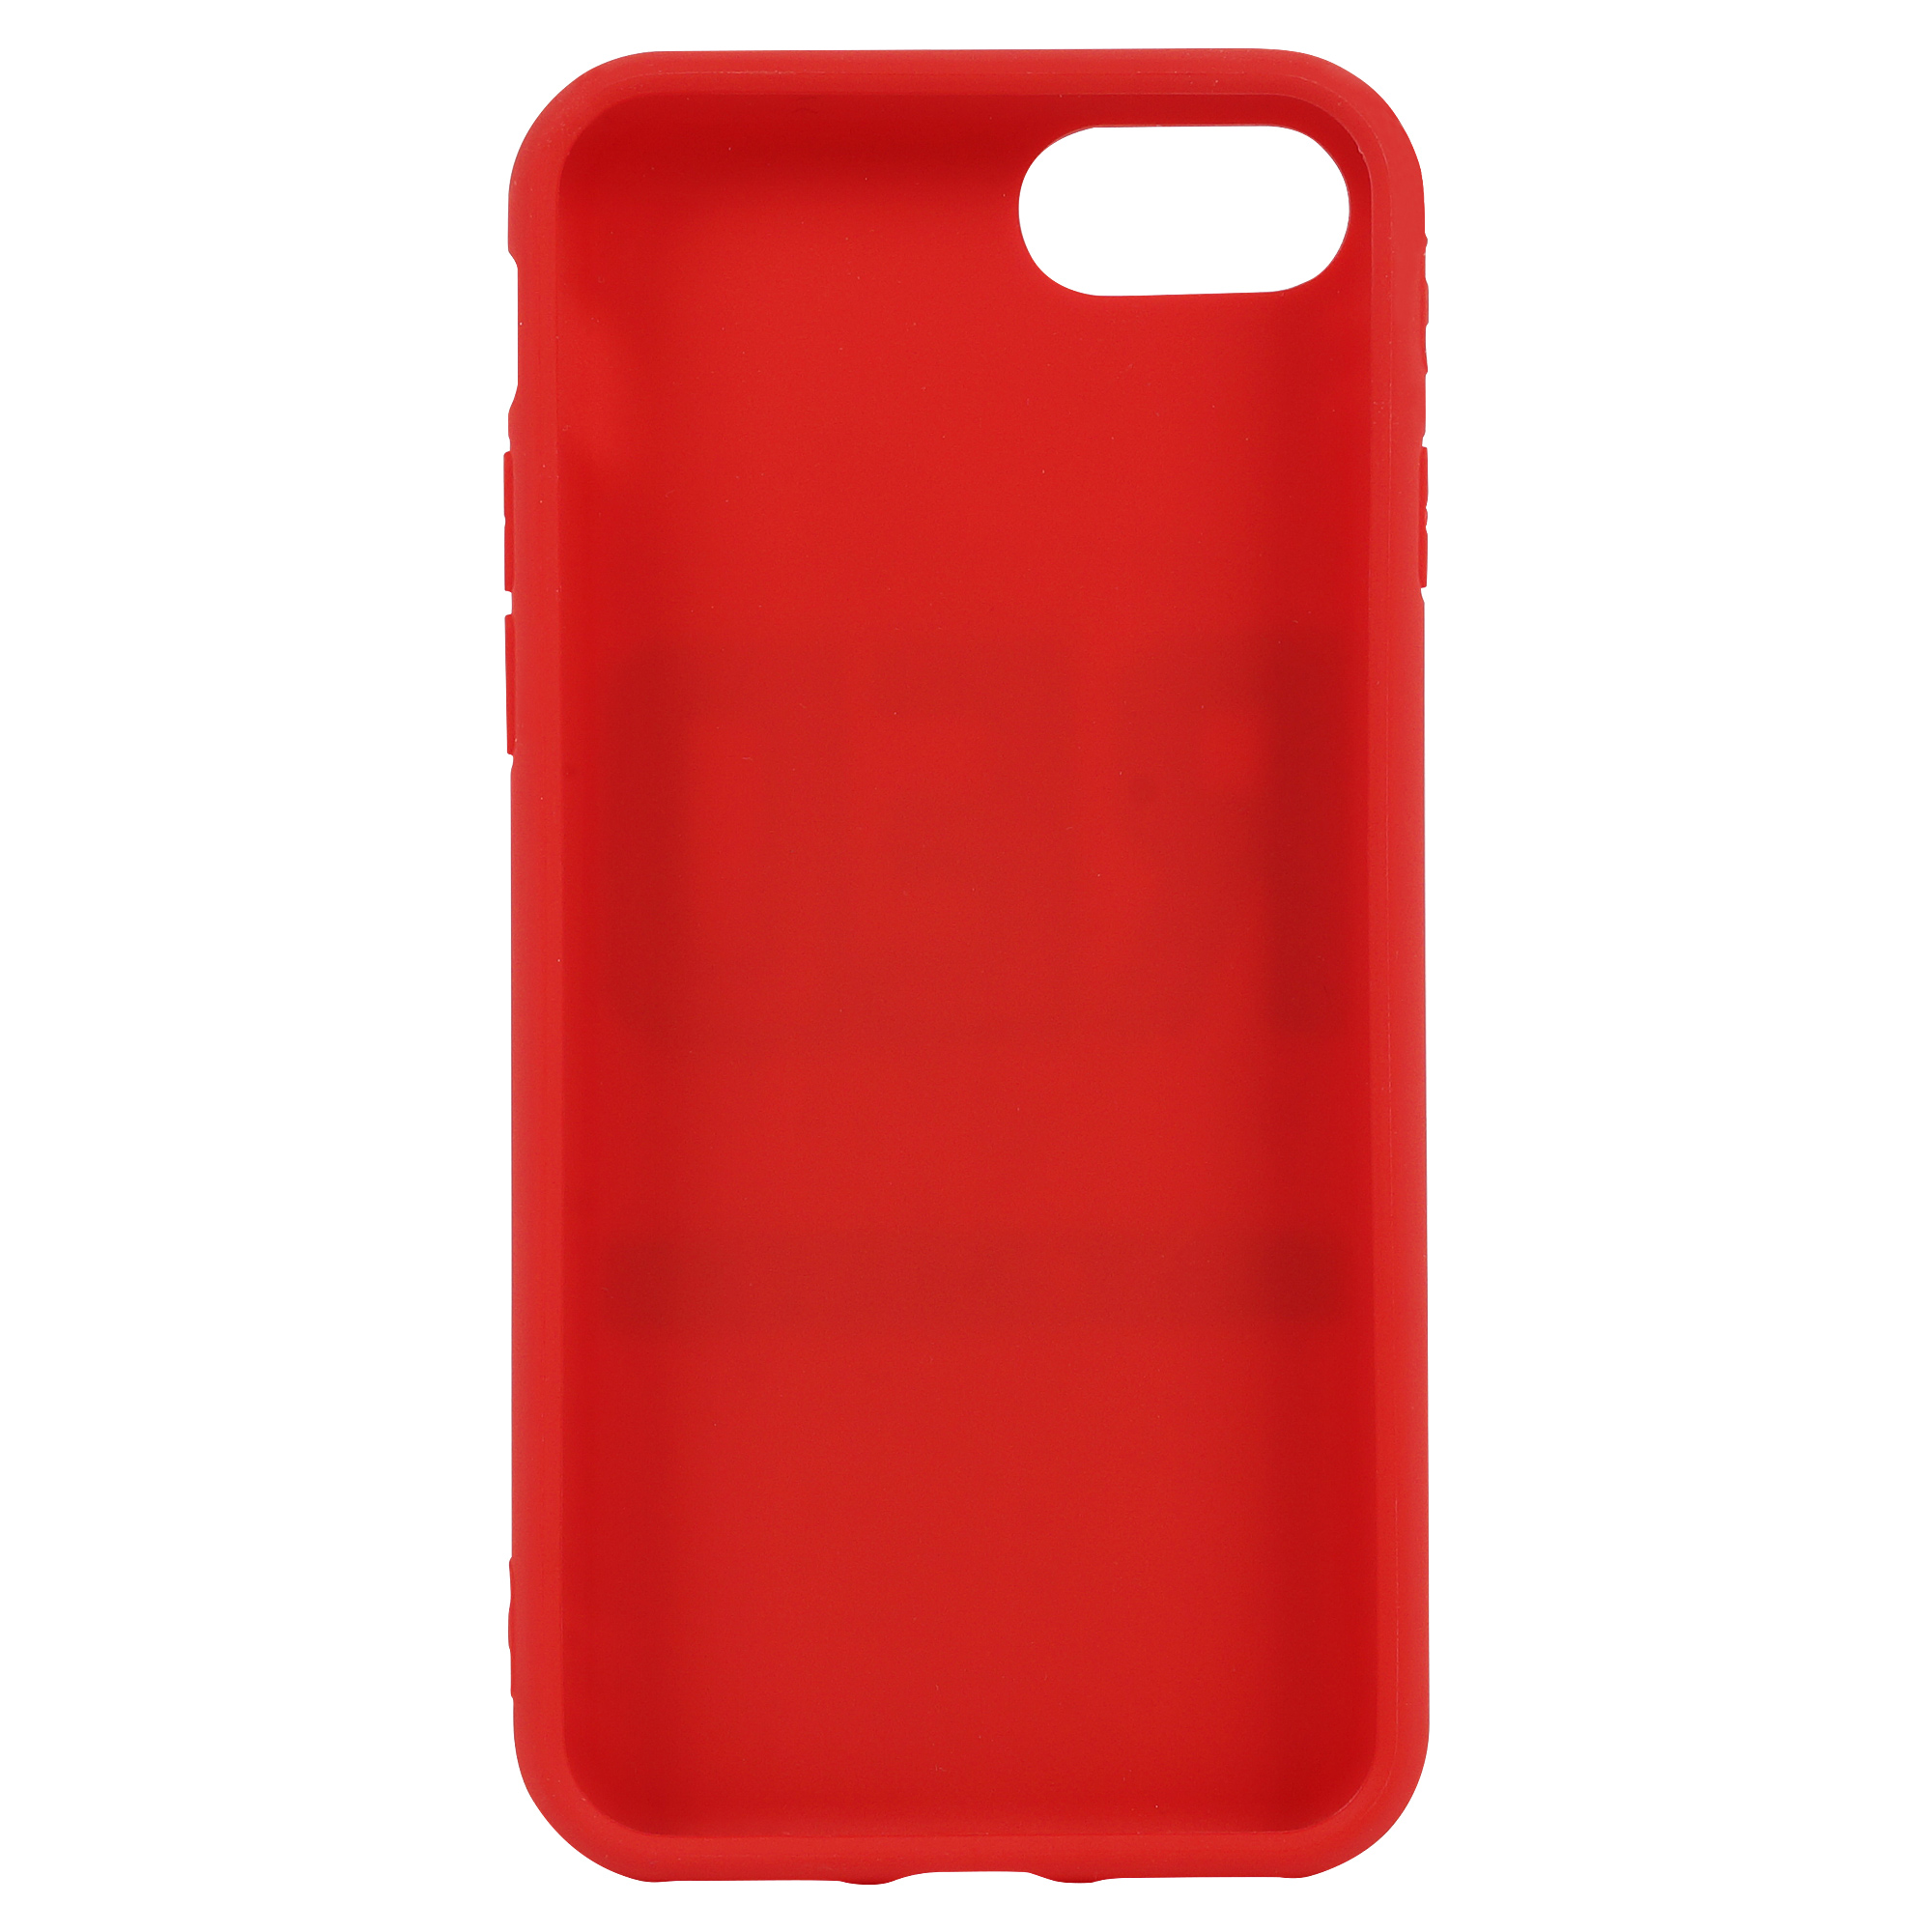 Чехол на iPhone Red Machine _10 ,арт.RM073, красный